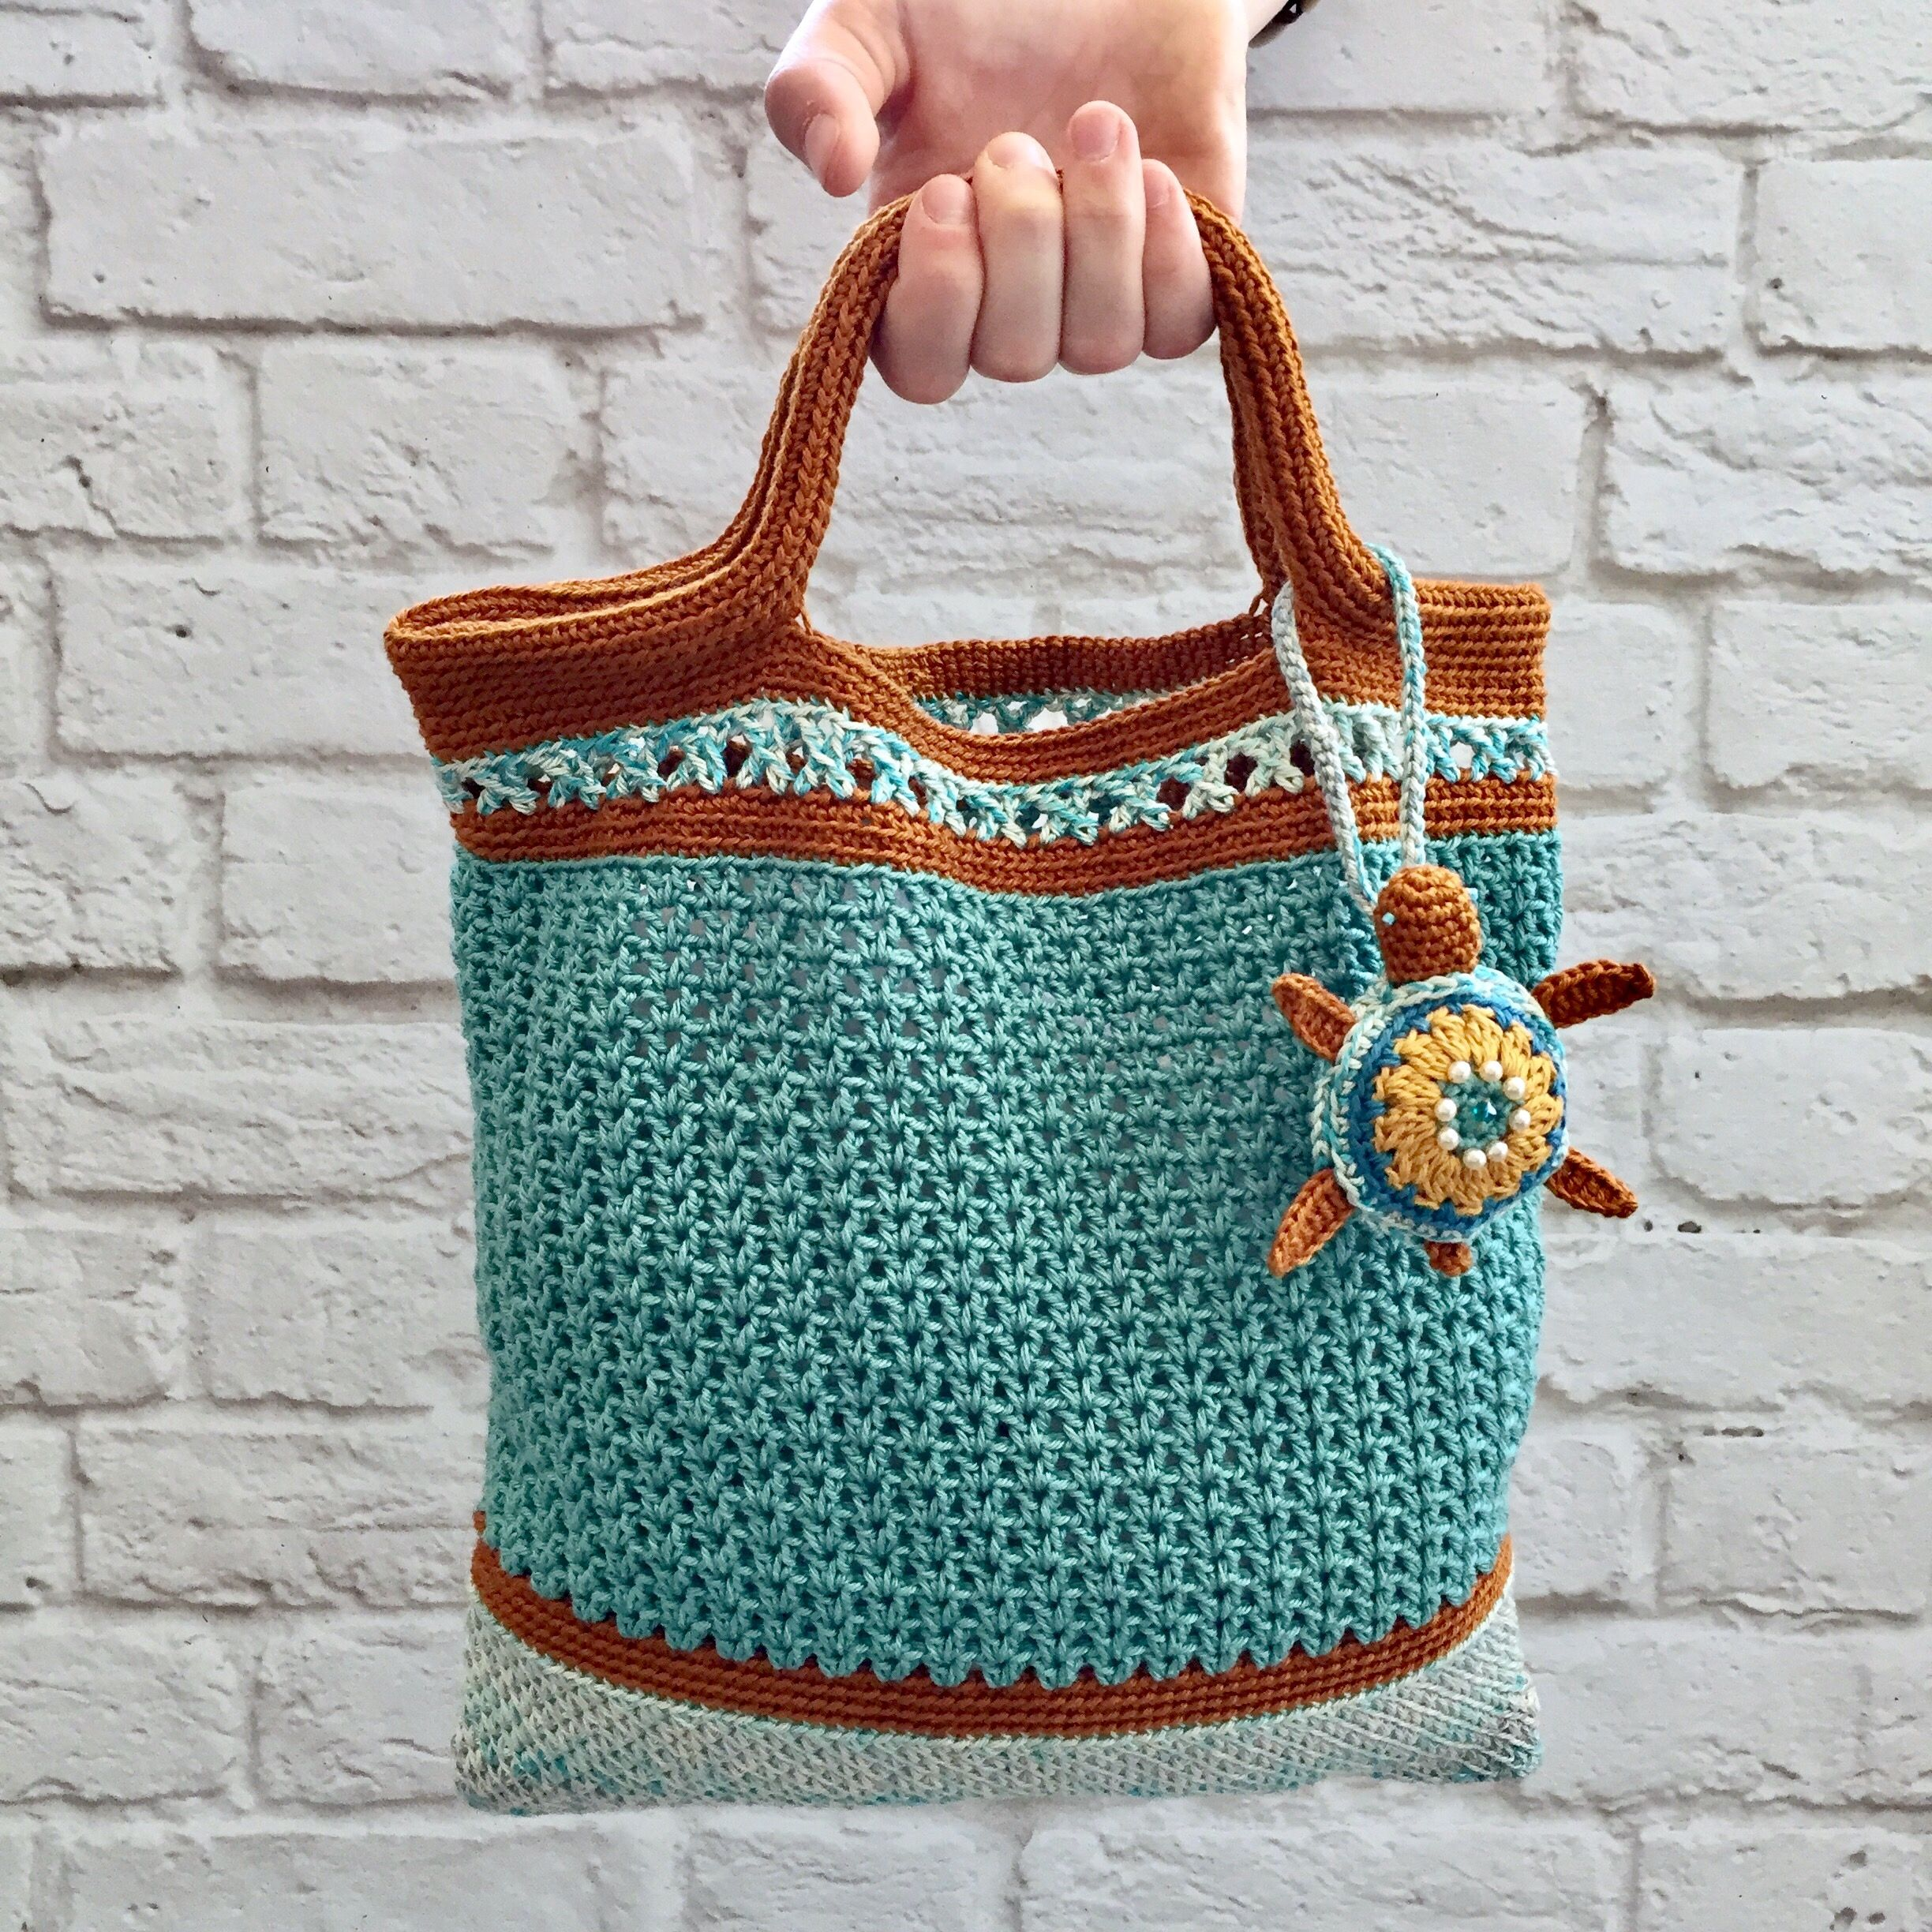 Crochet beach bag. Made of cotton yarn | bags | Pinterest ...